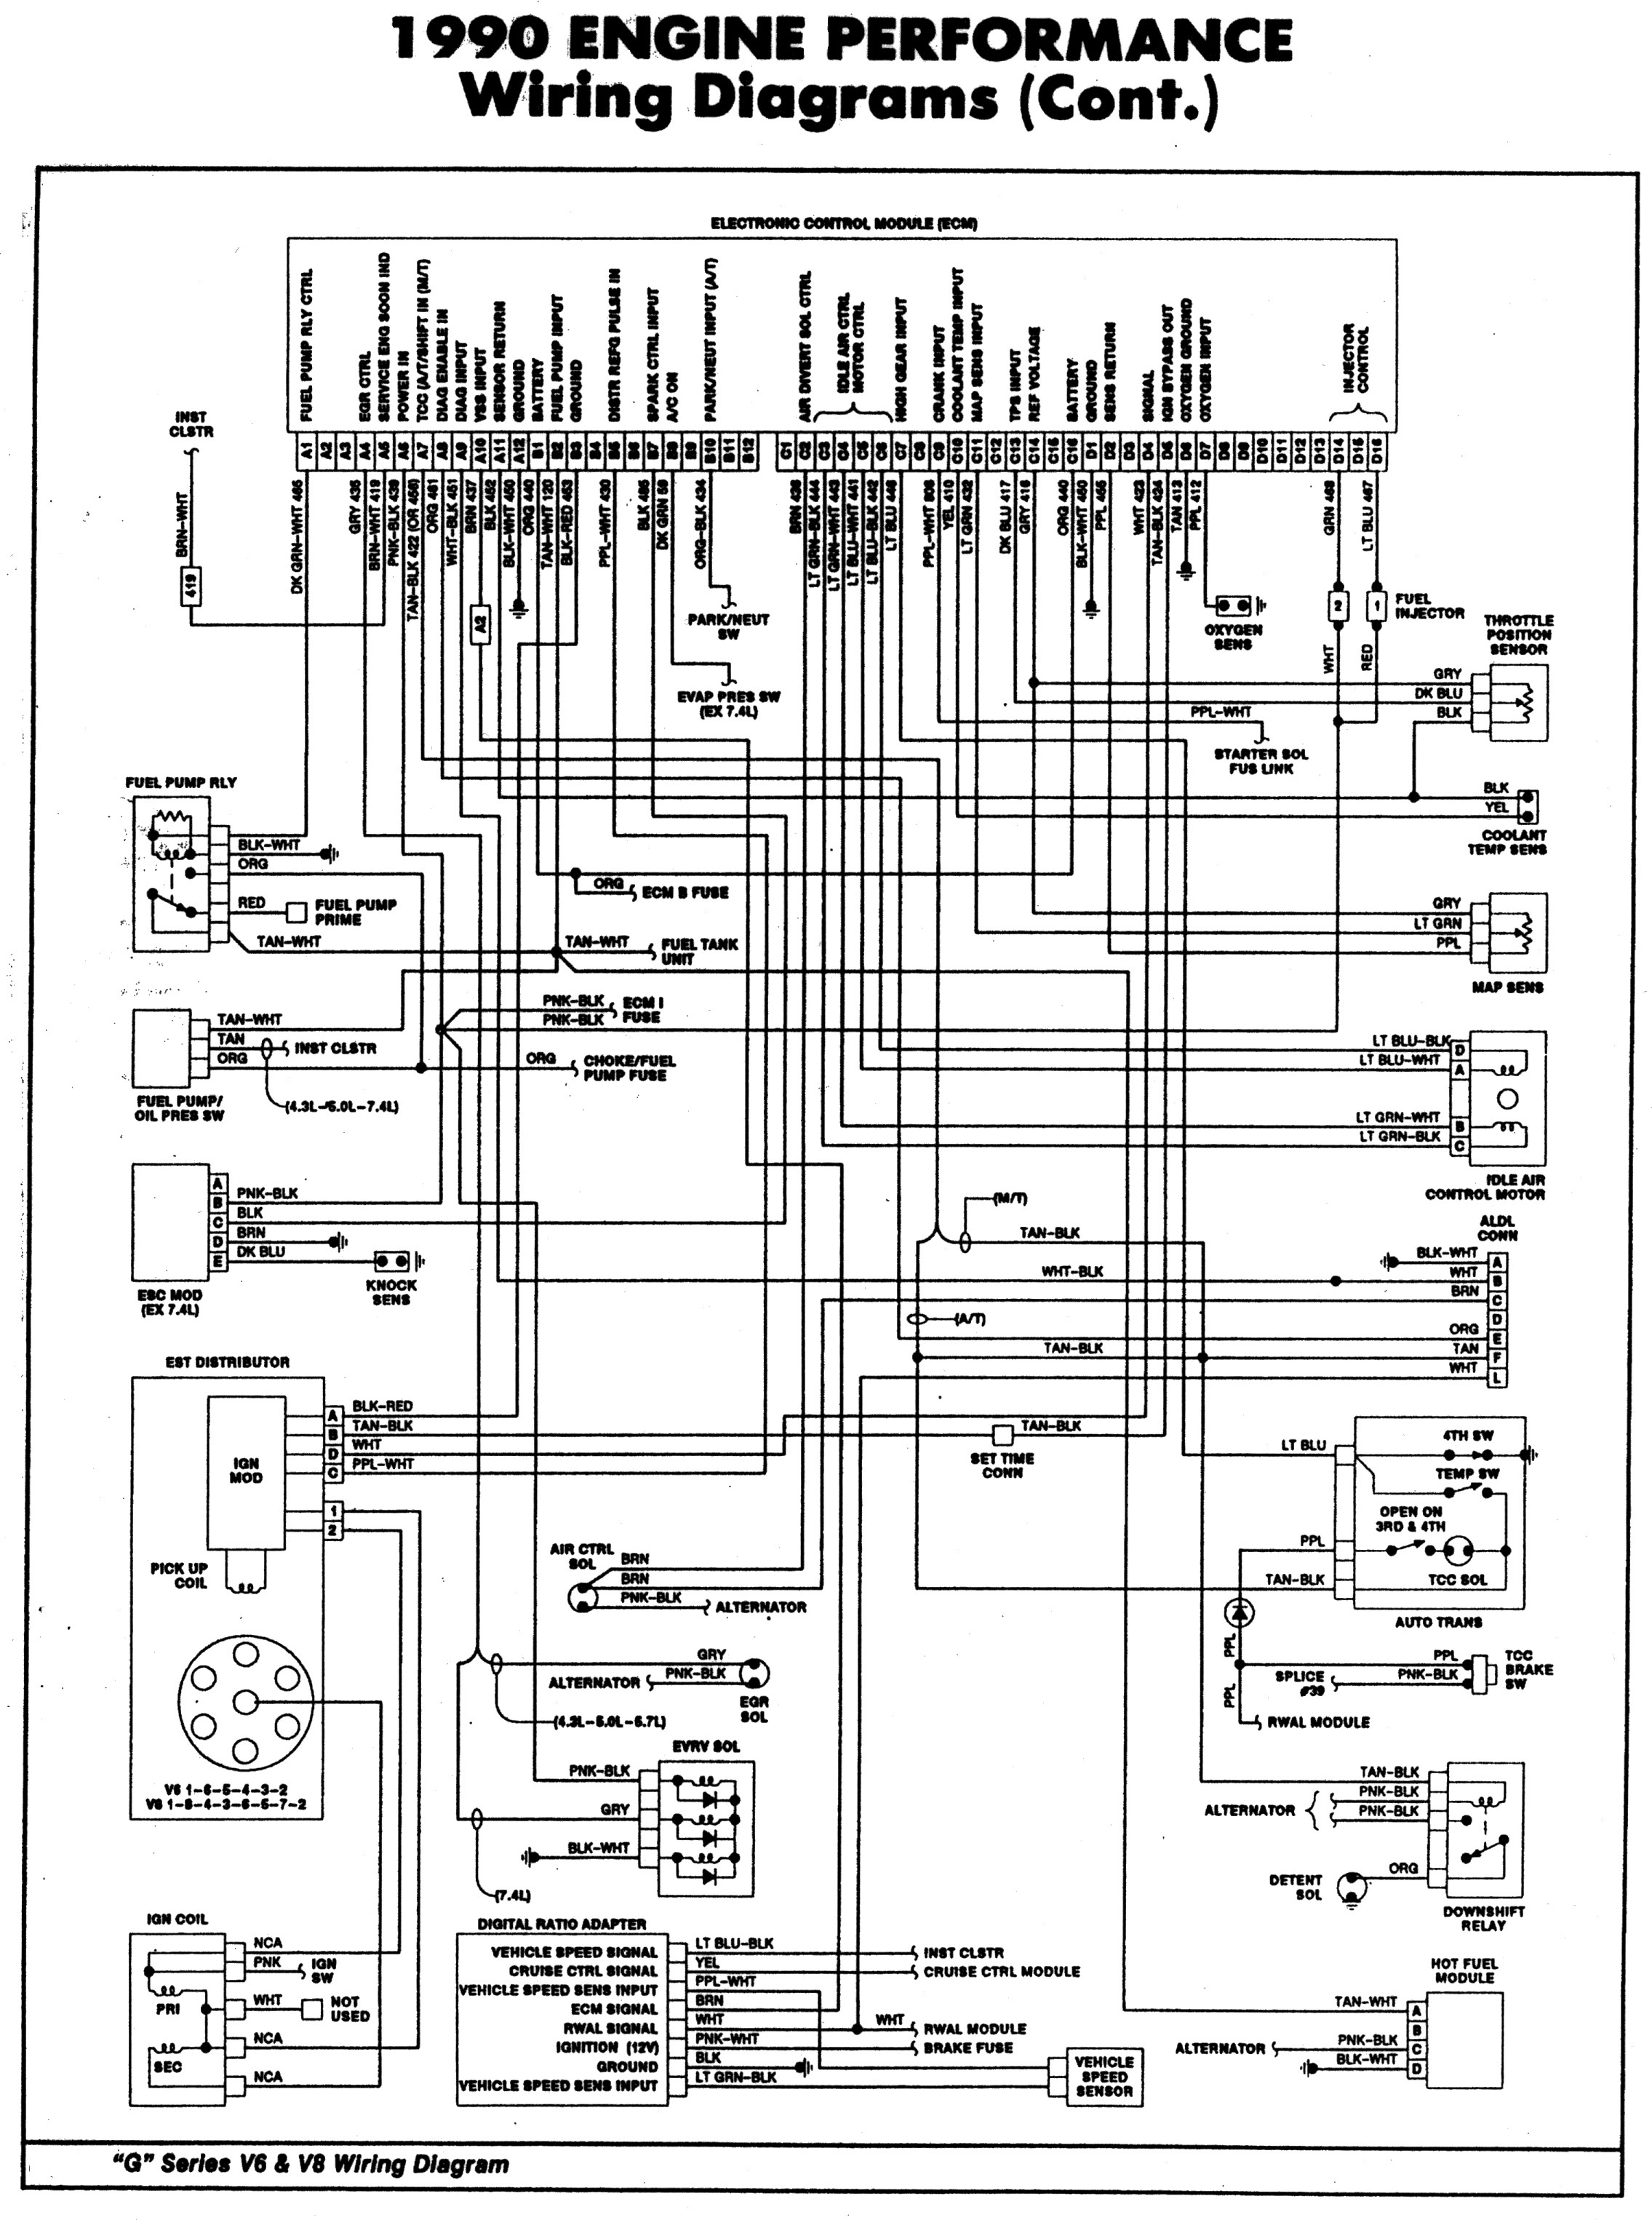 diagram 460 fuel injection painless wiring harness chevy tbi wiring diagram 460 fuel injection painless wiring harness chevy tbi wiring [ 2271 x 3051 Pixel ]